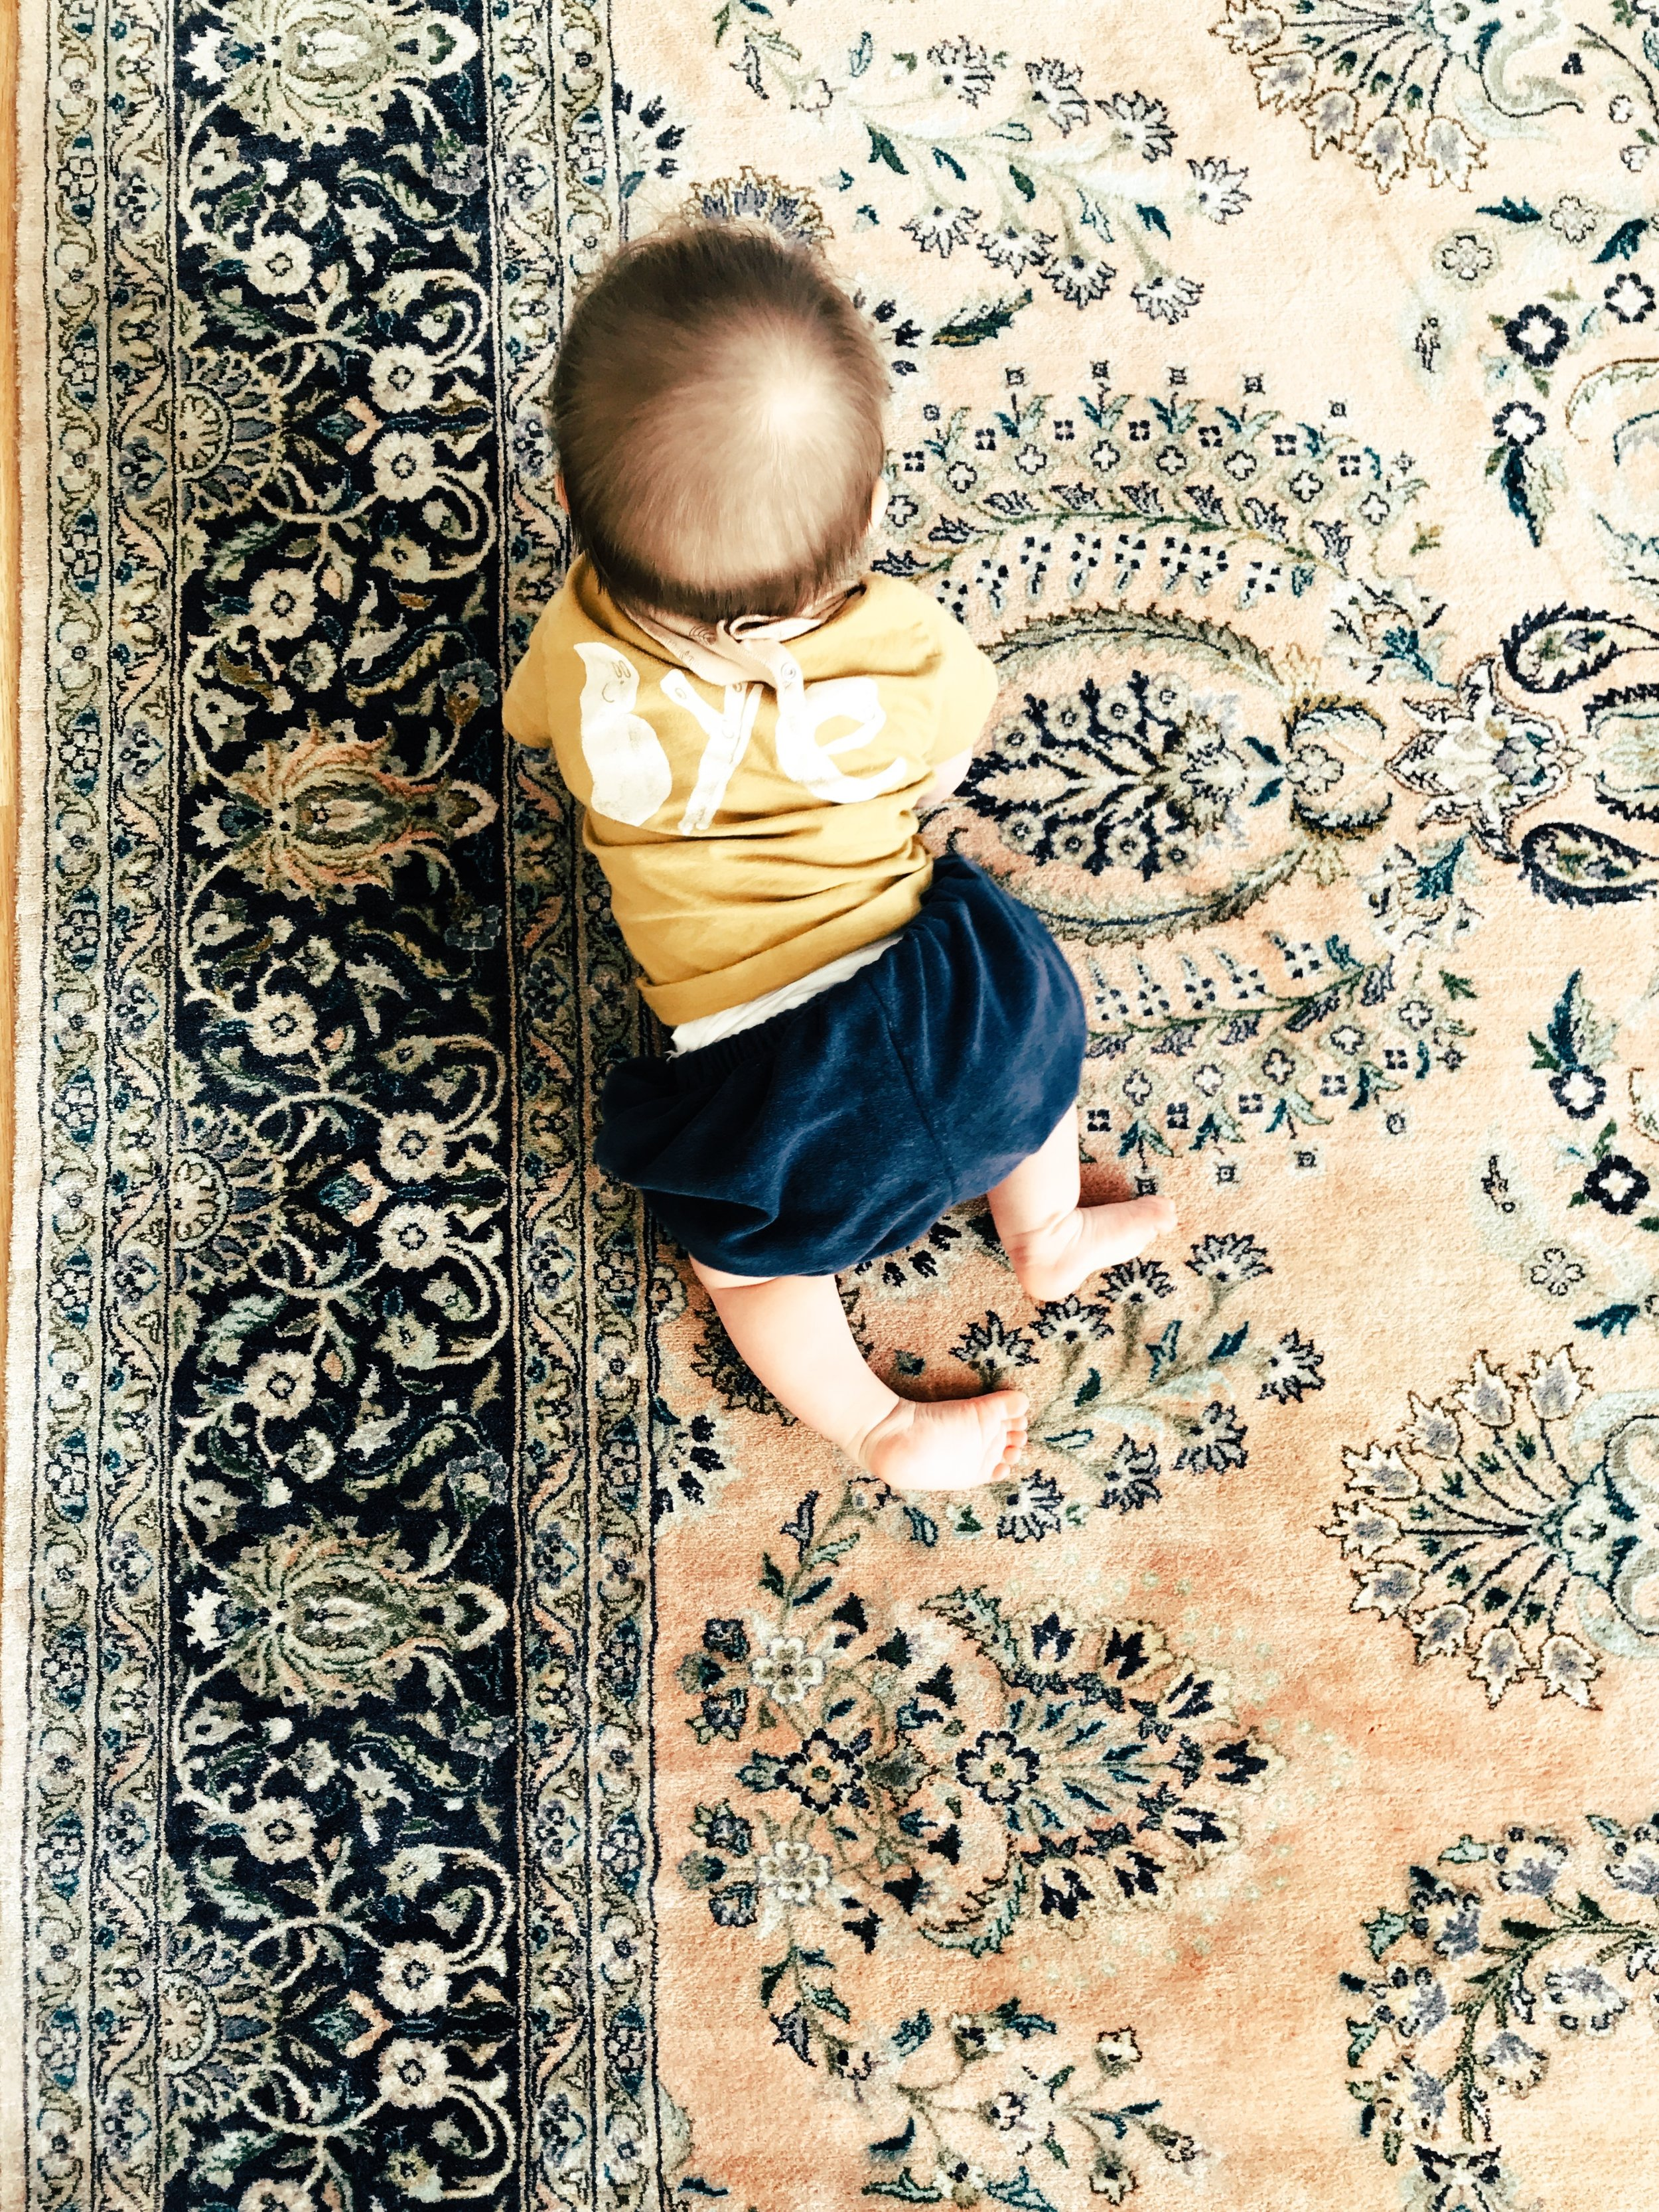 faded vintage persian rug baby crawling soft colours meaningful home #littlepeoplelivehere how to let go of stuff declutter inheritance the inheritance of things ourstorytime.co.uk